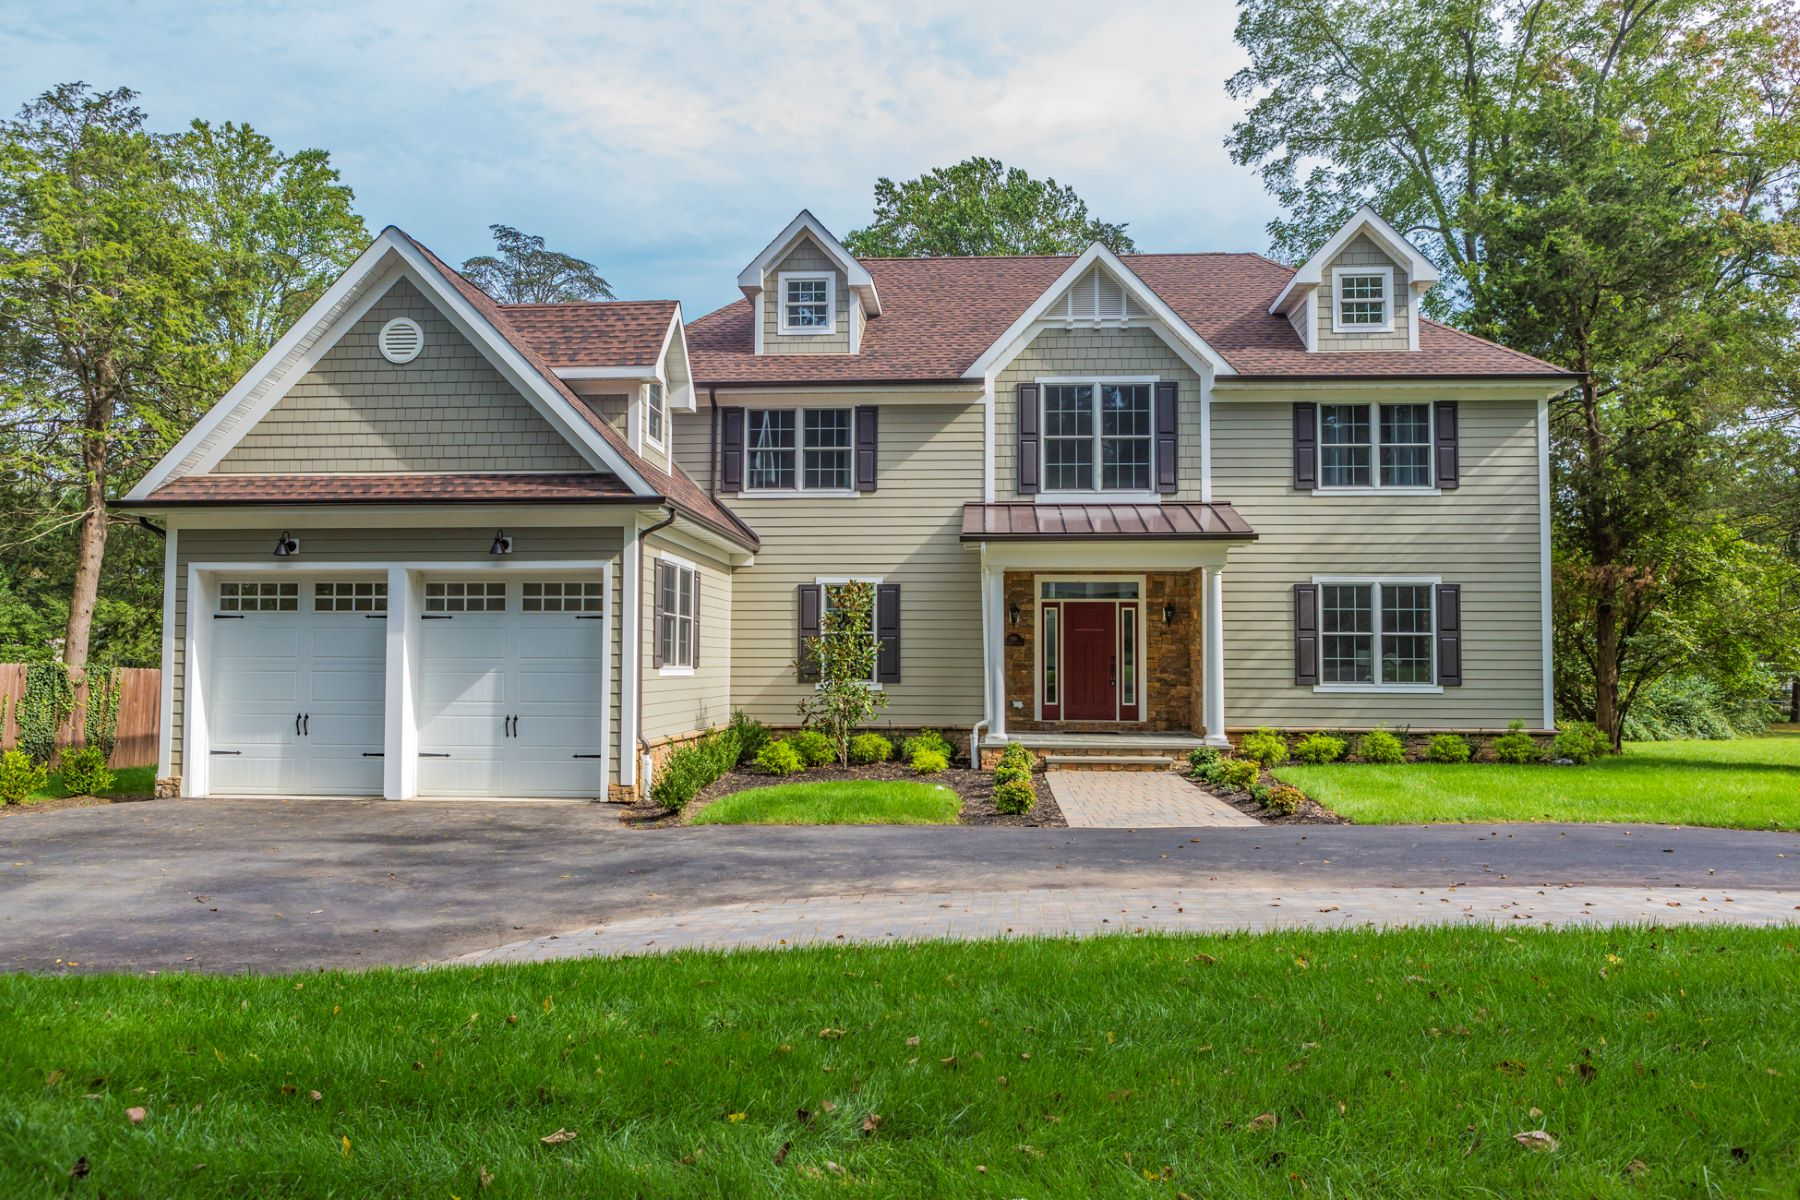 Property for Sale at Dramatic Luxury in Littlebrook 199 Snowden Lane, Princeton, New Jersey 08540 United States